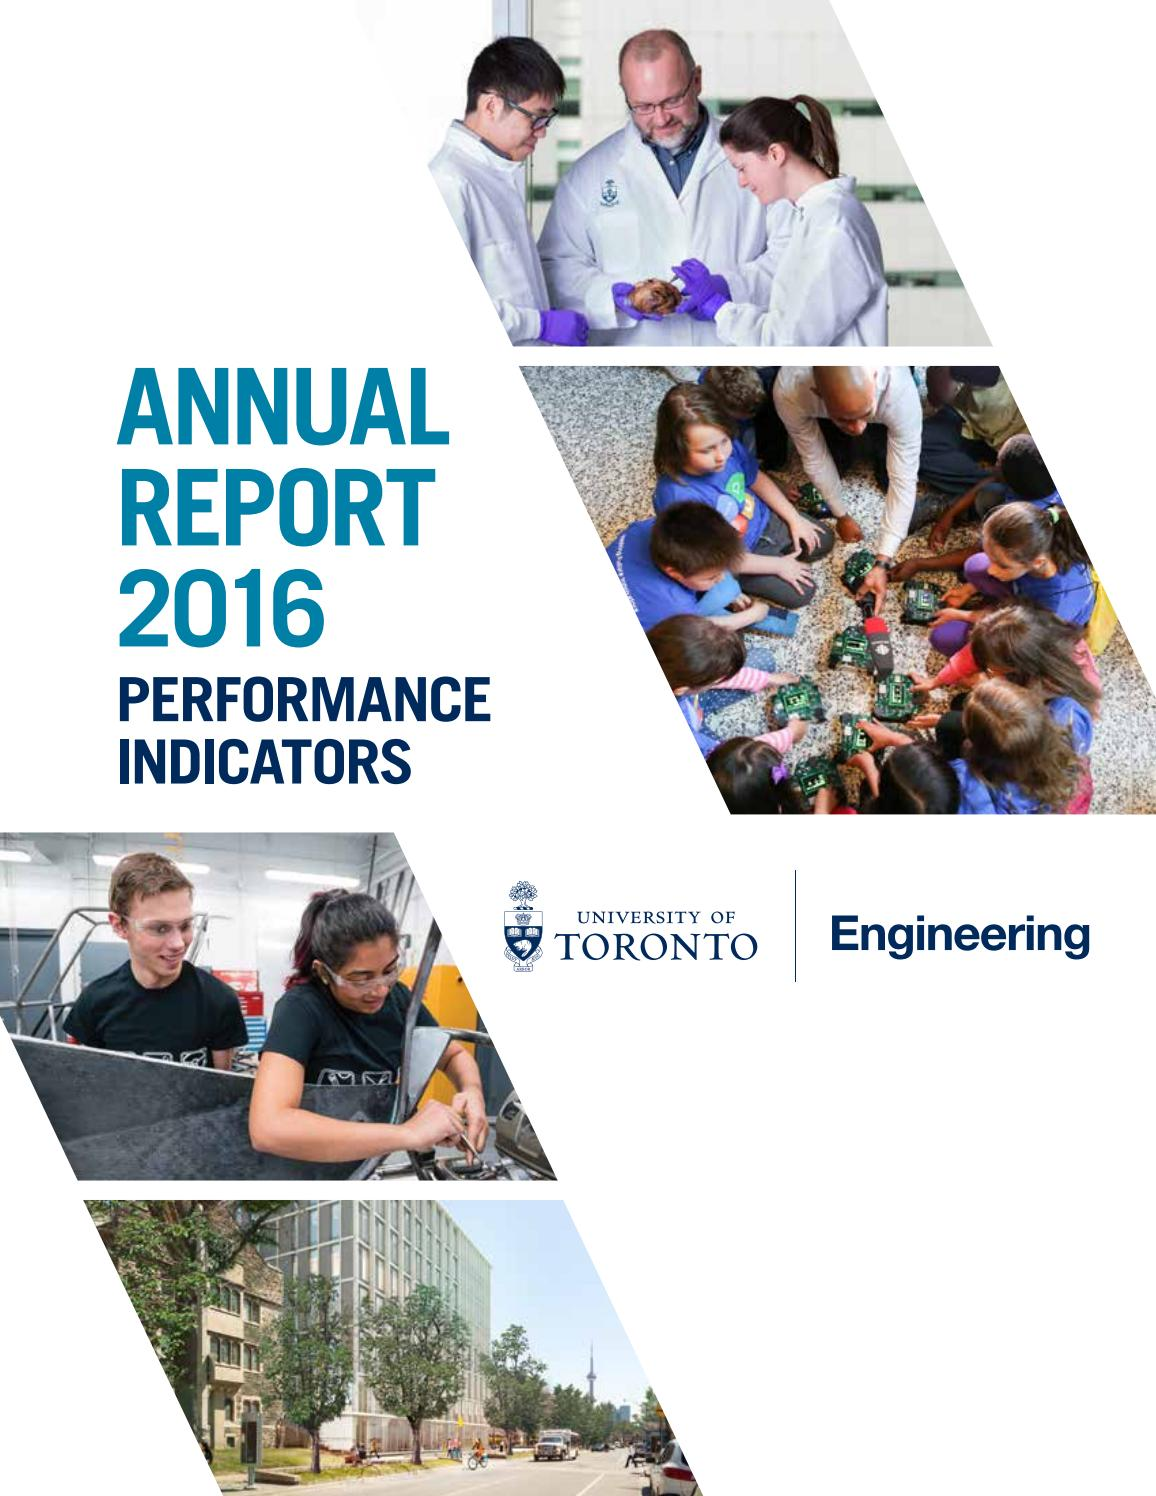 462c966d60e Annual Report Performance Indicators 2016 by University of Toronto Faculty  of Applied Science   Engineering - issuu